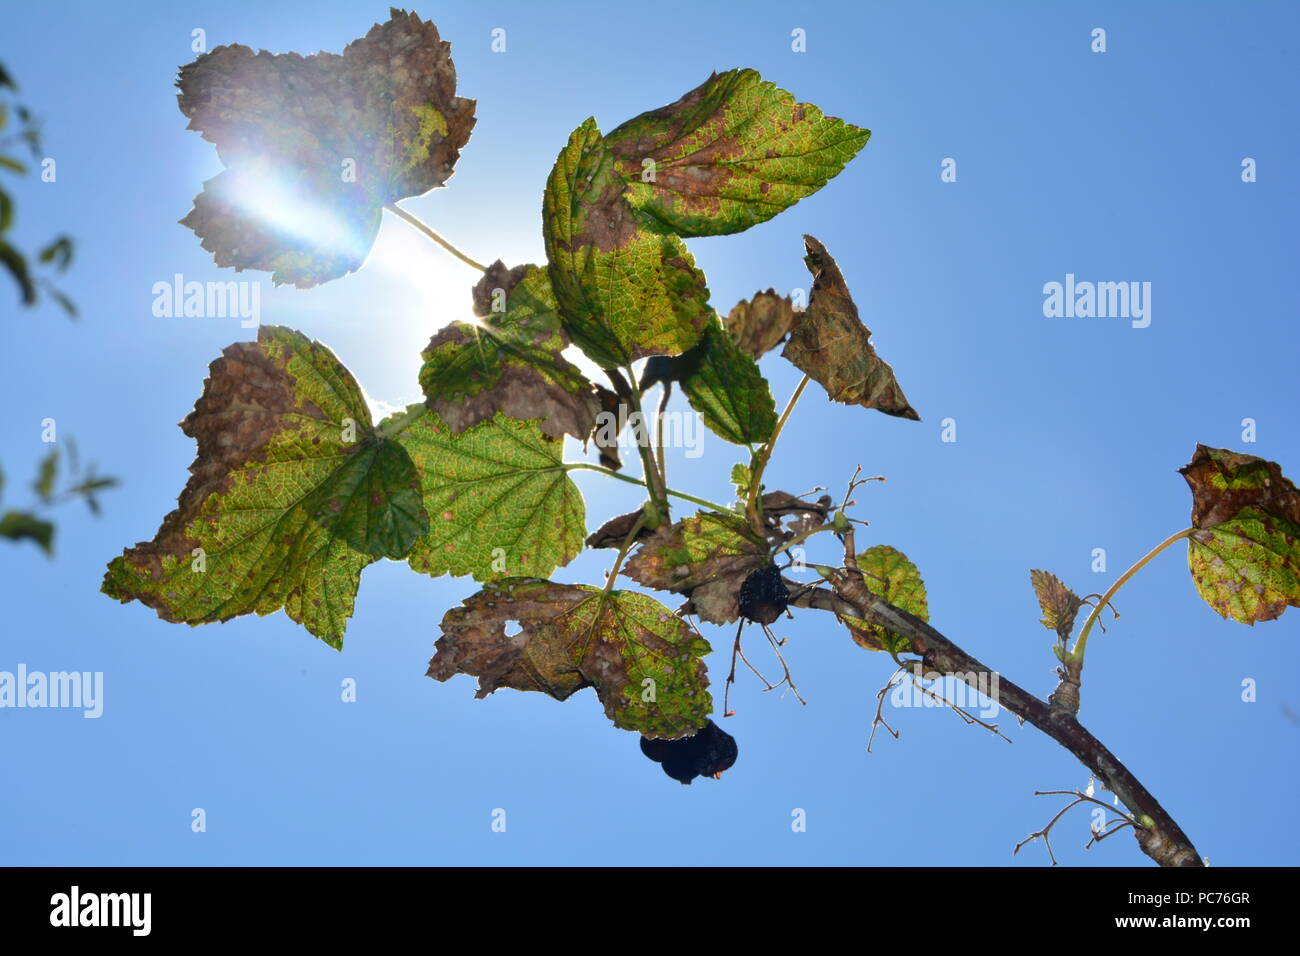 Black dried berries with brown leaves on the branch in front of blue sky with sunshine - Stock Image